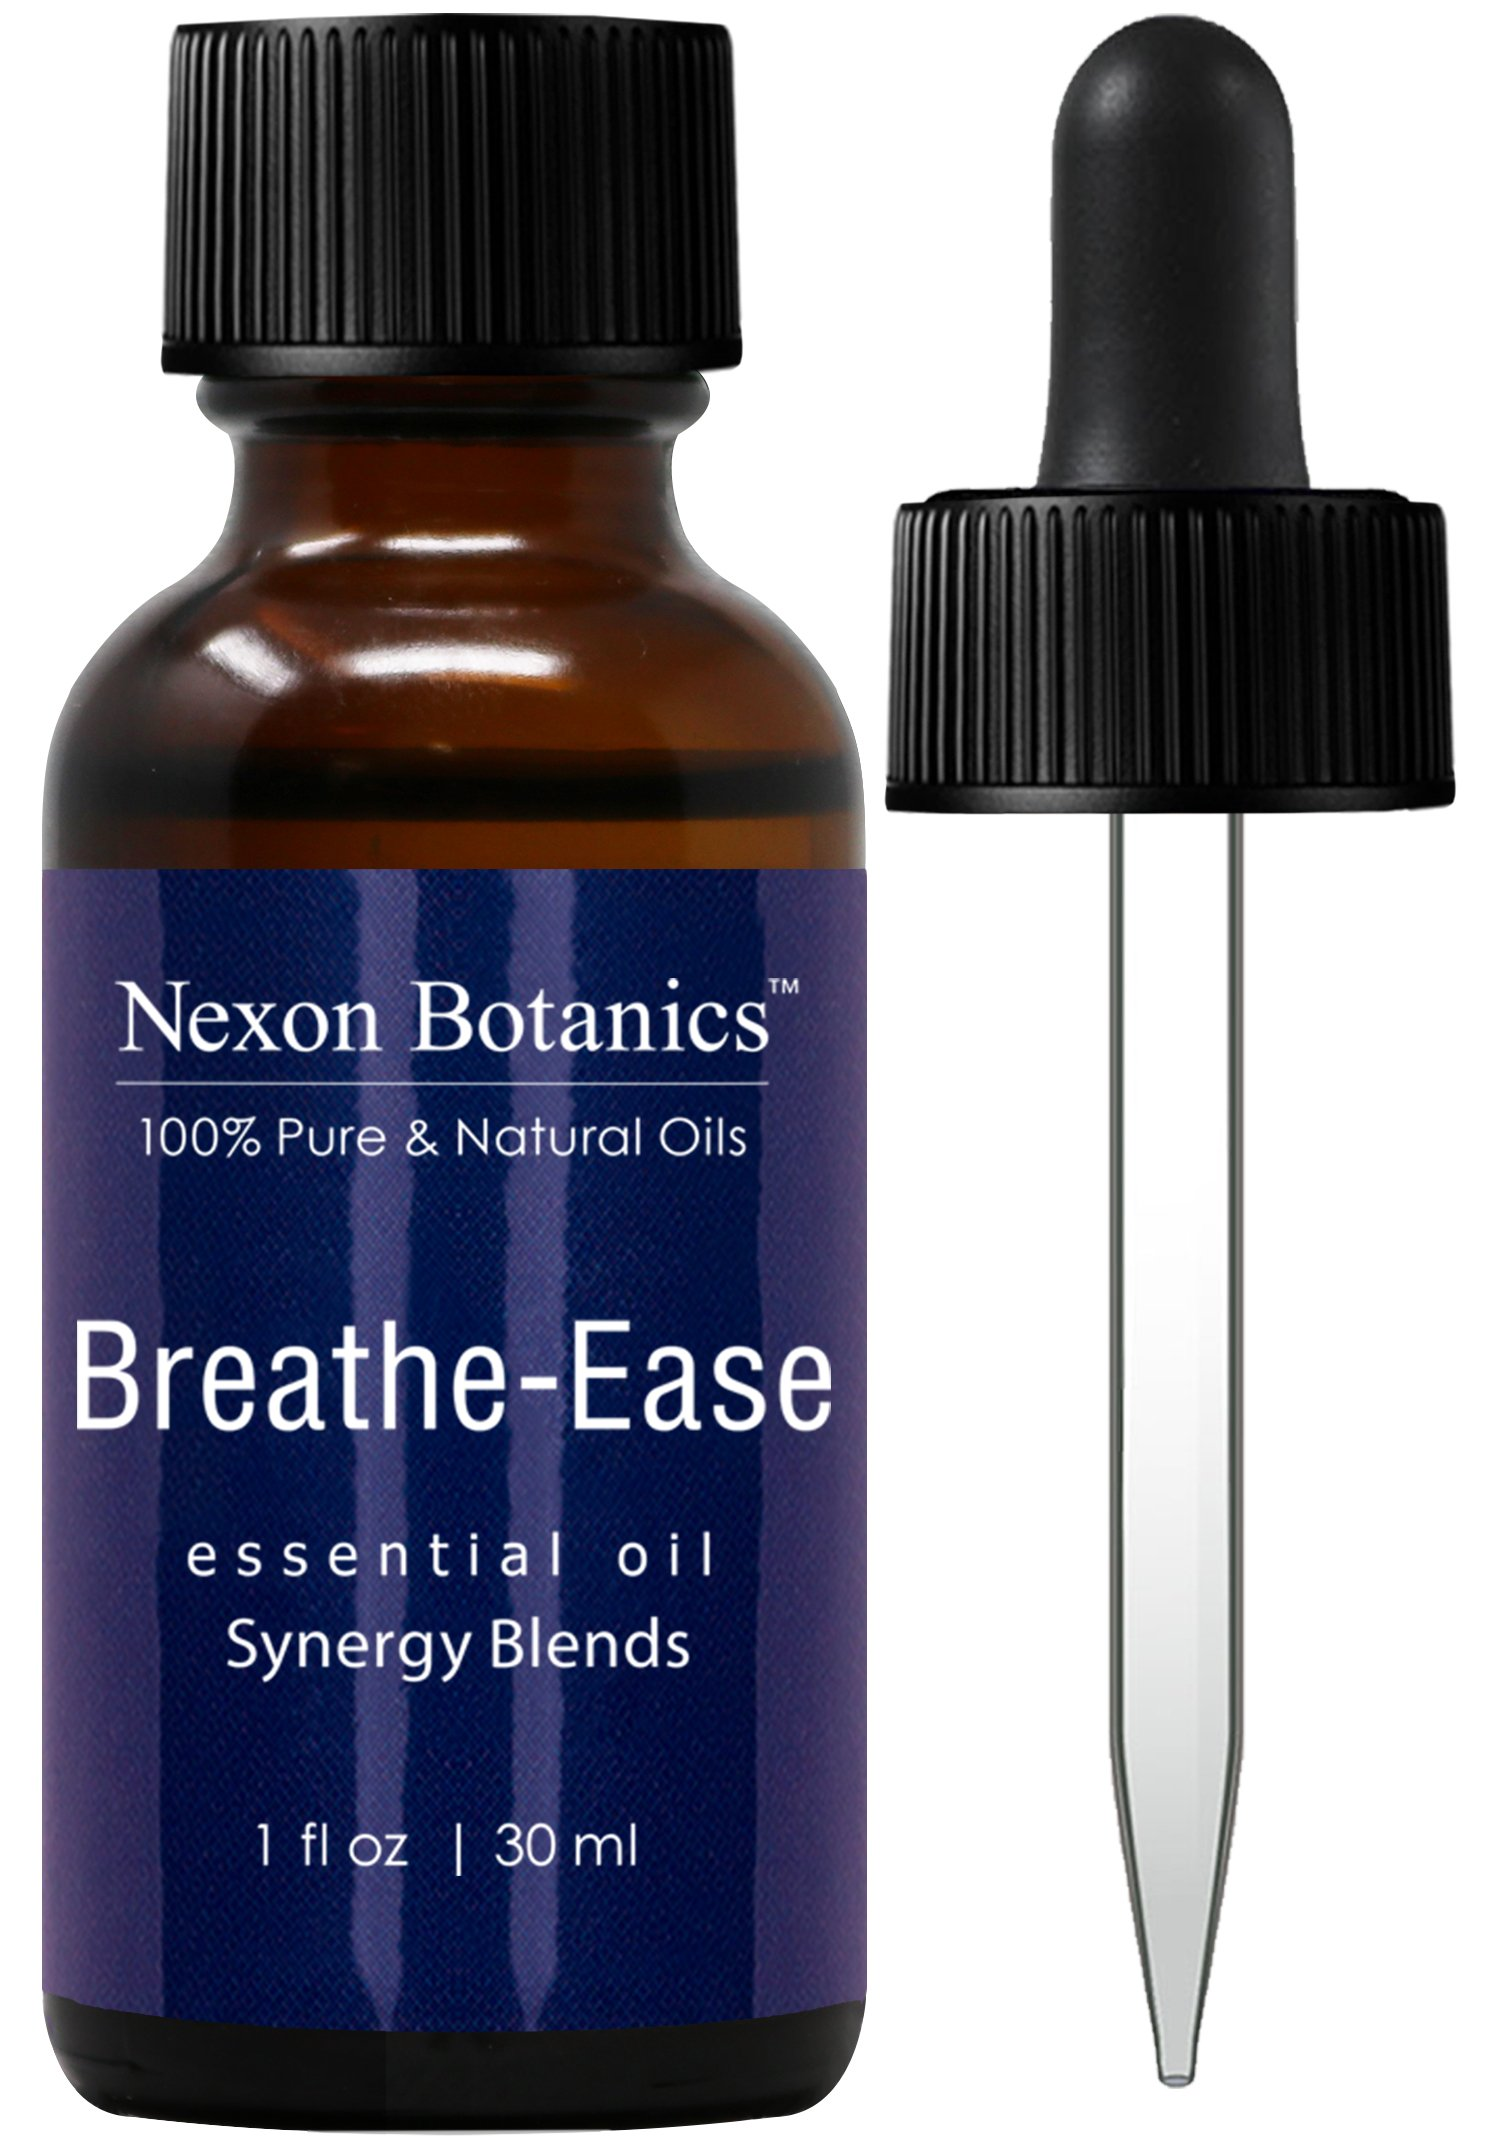 Breathe Ease Essential Oil Synergy Blend - 100% Pure and Natural Therapeutic Grade Blends from Eucalyptus, Rosemary, Peppermint and Niaouli Oils - Best Aromatherapy Breathing from Nexon Botanics(30ml)